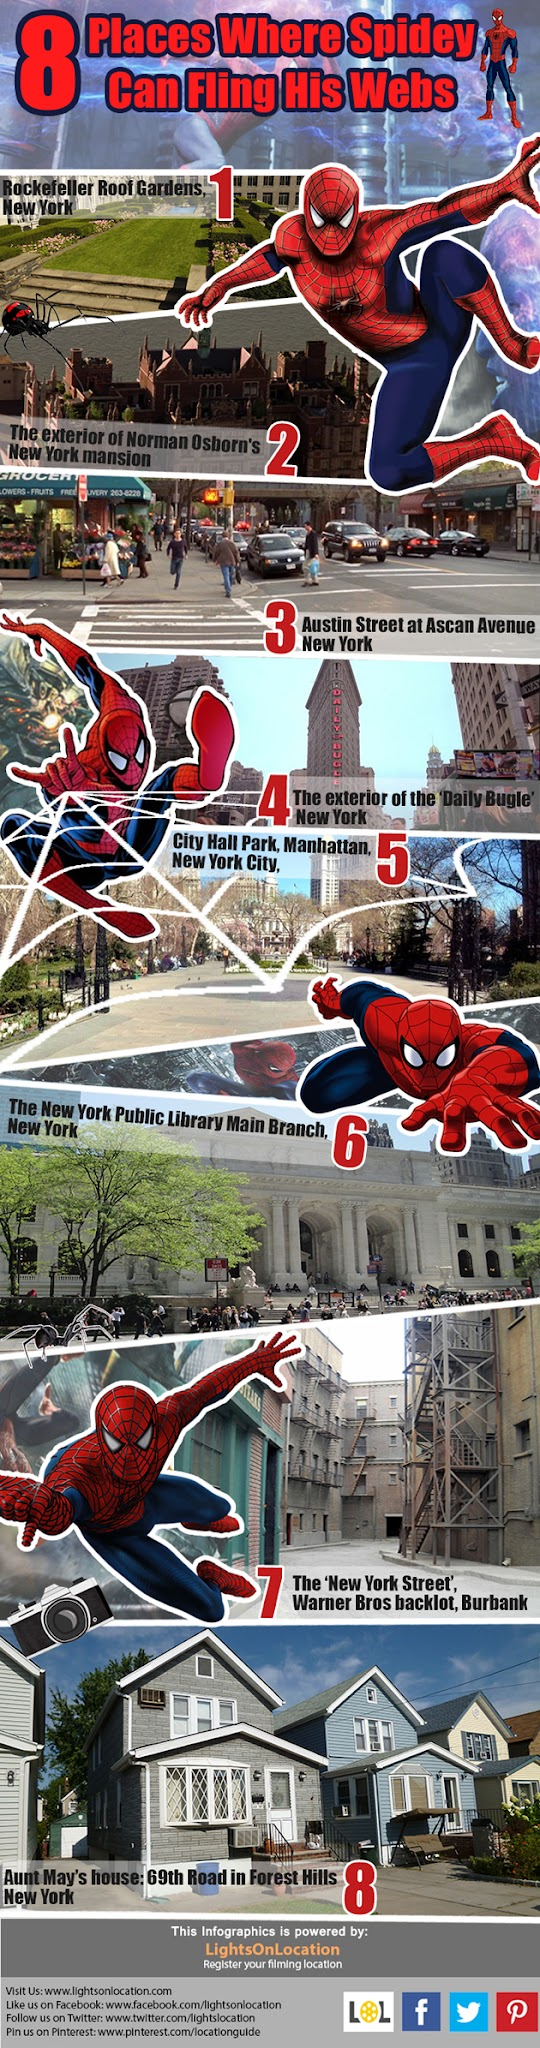 8 PLACES WHERE SPIDEY FLINGS HIS WEBS